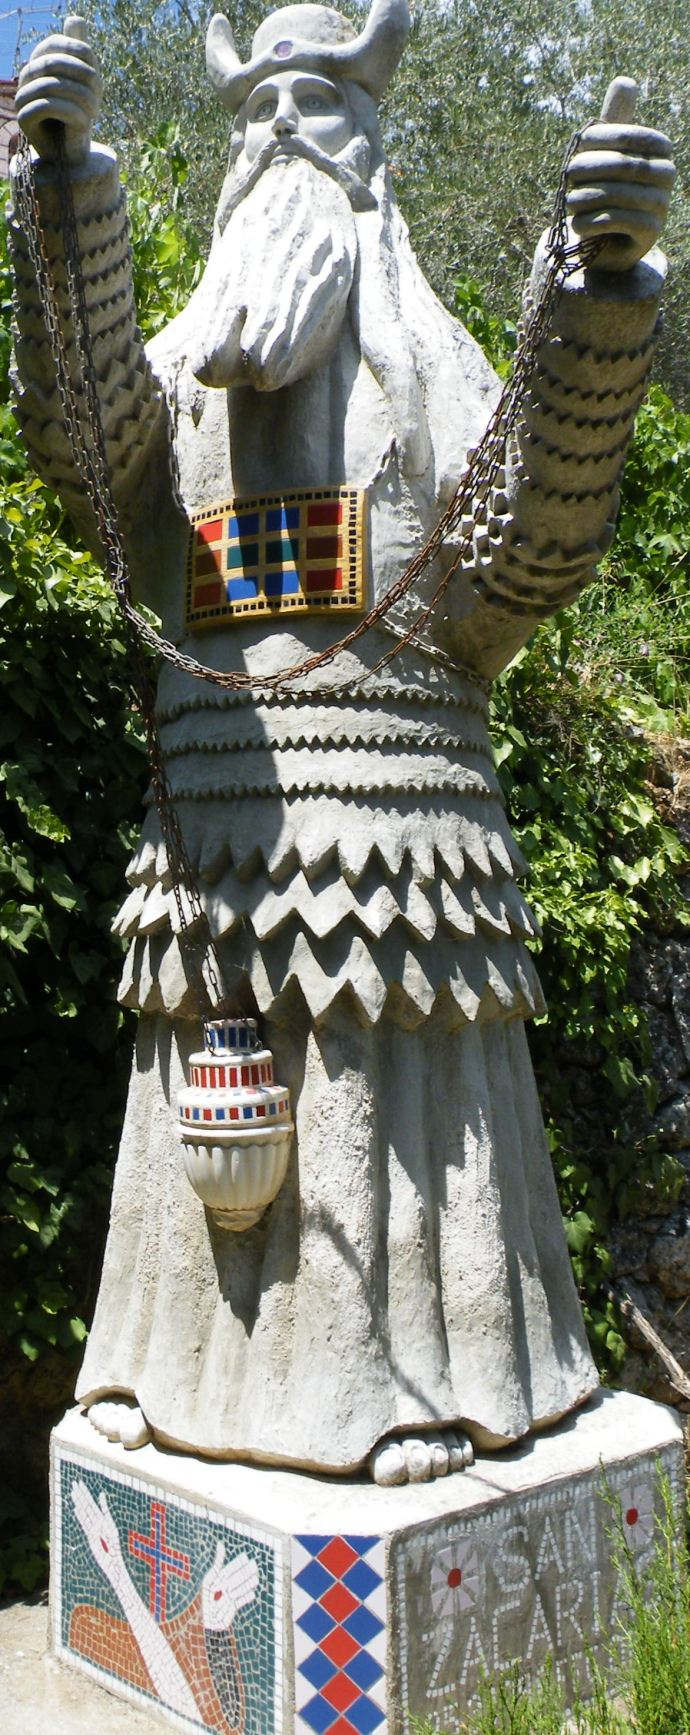 In the hill country of Judah, they have the ugliest statue of Zecahriah in the world